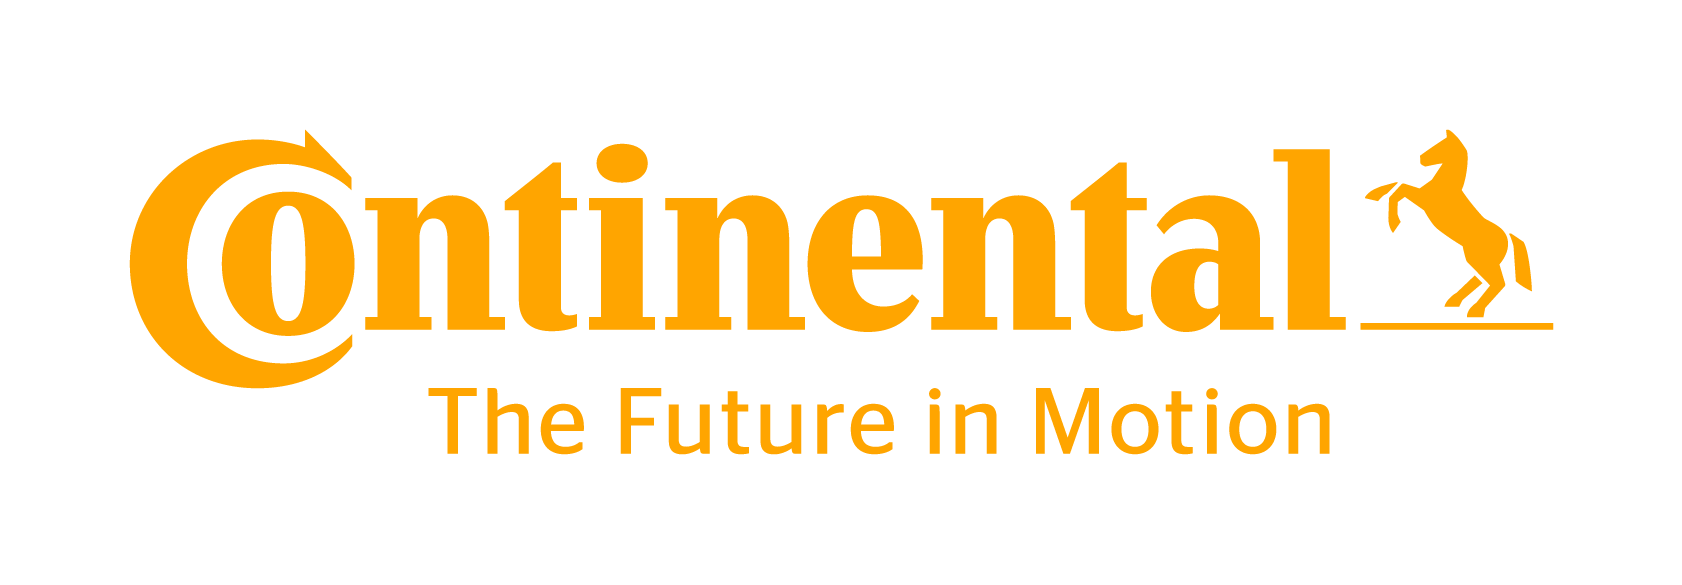 Continental Automotive RUS